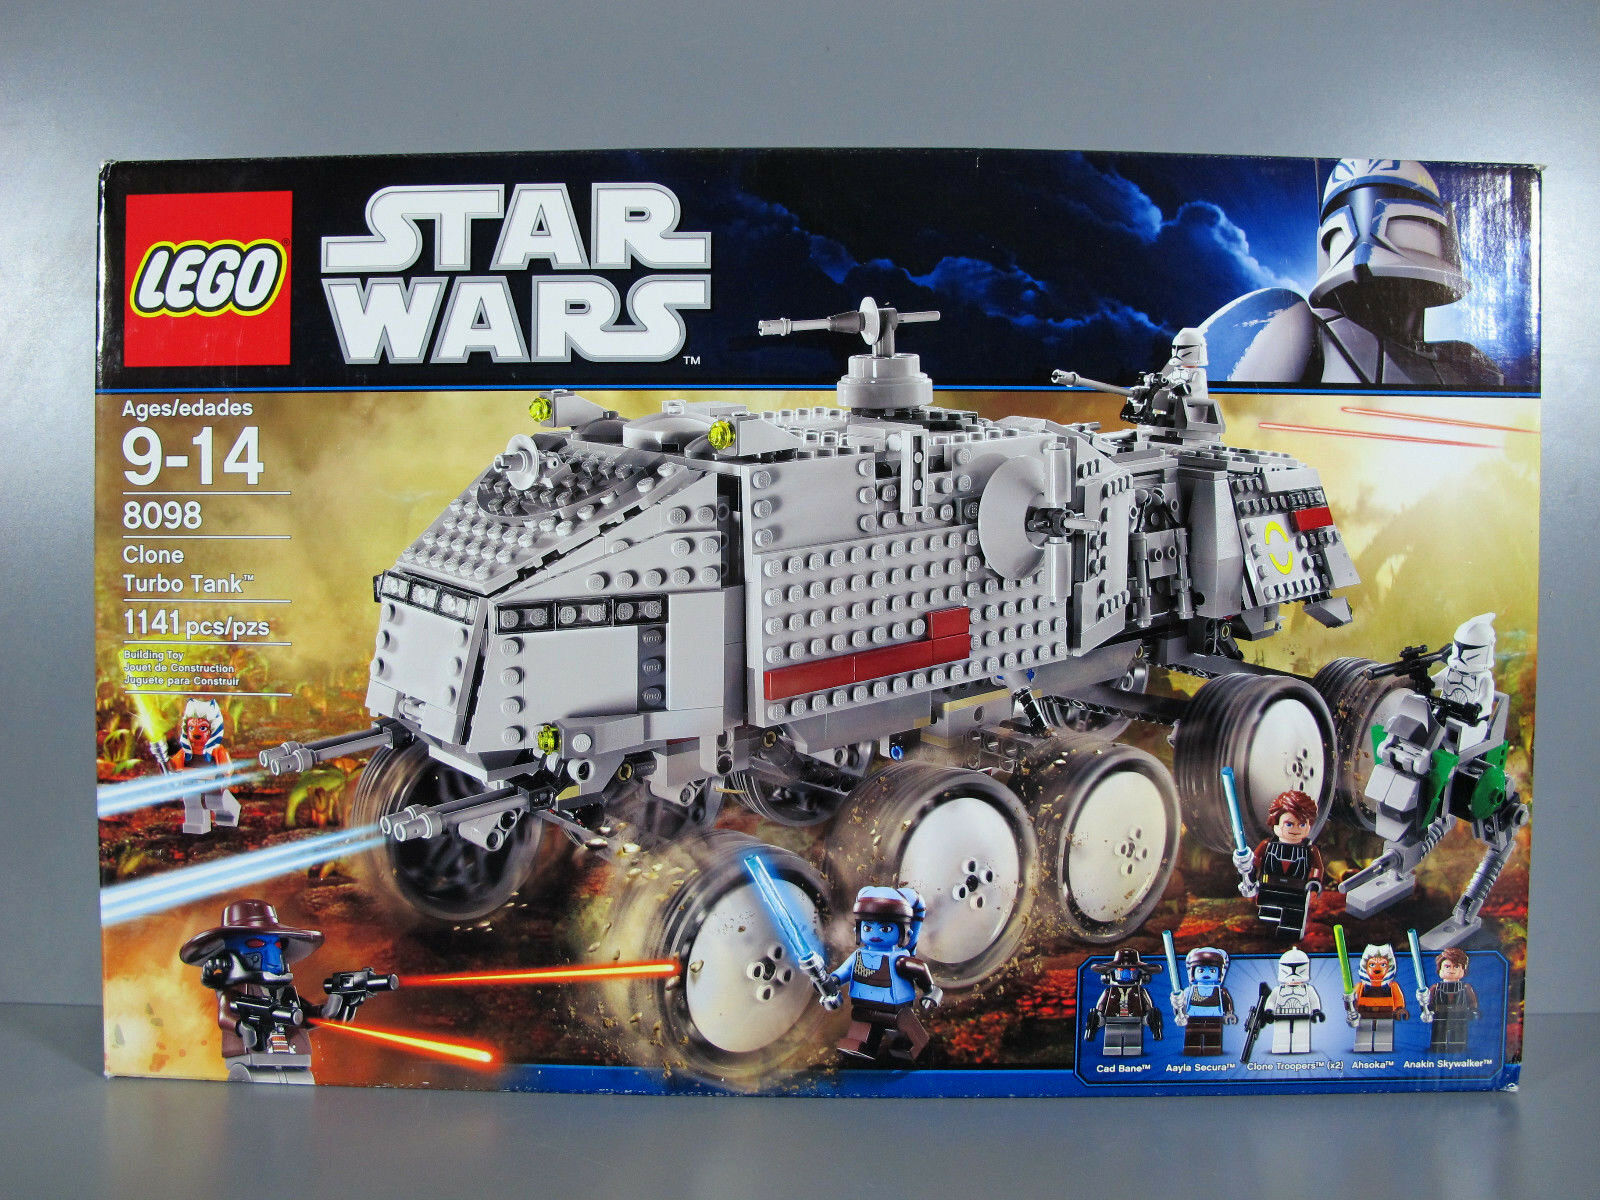 New Factory Sealed Star Wars The Clone Wars Wars Wars 2011 Lego 8098 Clone Turbo Tank 804e01